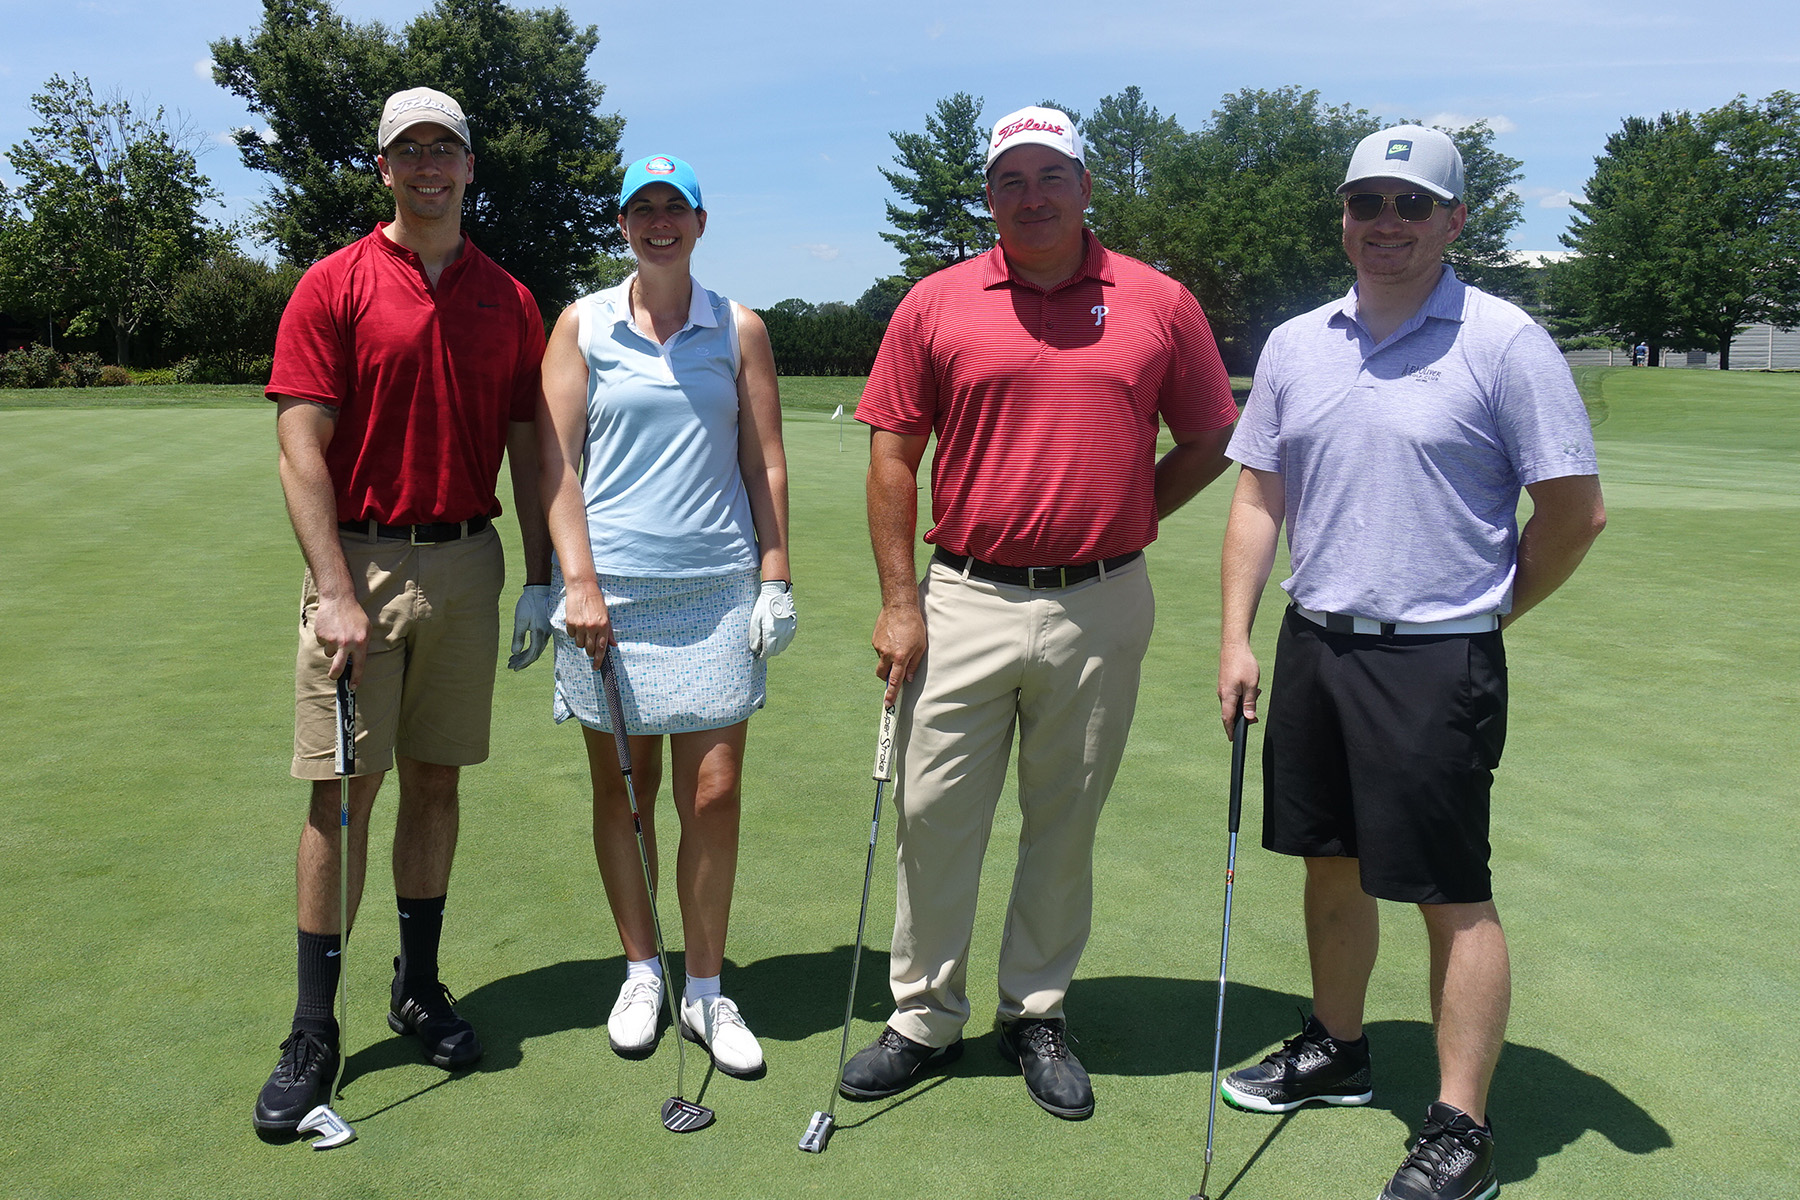 From left to right: Kevin Hancock, Julie Yeager, James Cole and Chris Talley